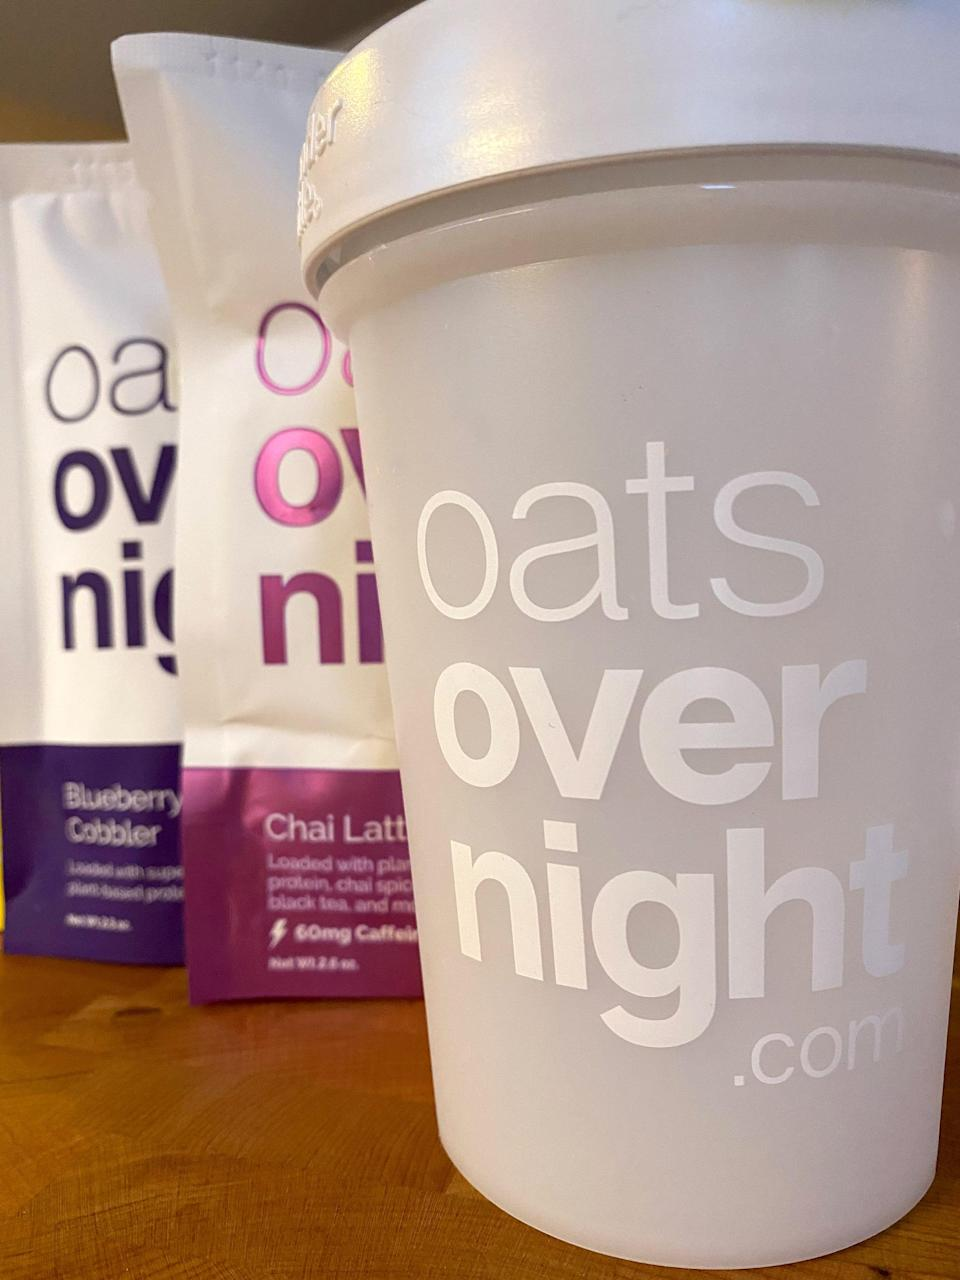 <p>My Oats Overnight came with a shaker bottle you'd use for protein shakes, but why? Because one way you can enjoy your Oats Overnight is by drinking them.</p> <p>Just fill the cup to the designated fill line with the milk of your choice (I used unsweetened soy milk), stir in the Oats Overnight packet, pop the container in the fridge, and in the morning, you just grab the bottle and drink it cold. Adding the one cup of milk makes it have more of a thick smoothie texture.</p> <p>Or if you prefer a spoonable consistency, just pour the packet into a bowl or mason jar, add less milk (I used three-quarters cup), and in the morning you can enjoy it like regular oatmeal, cold or warmed up.</p>